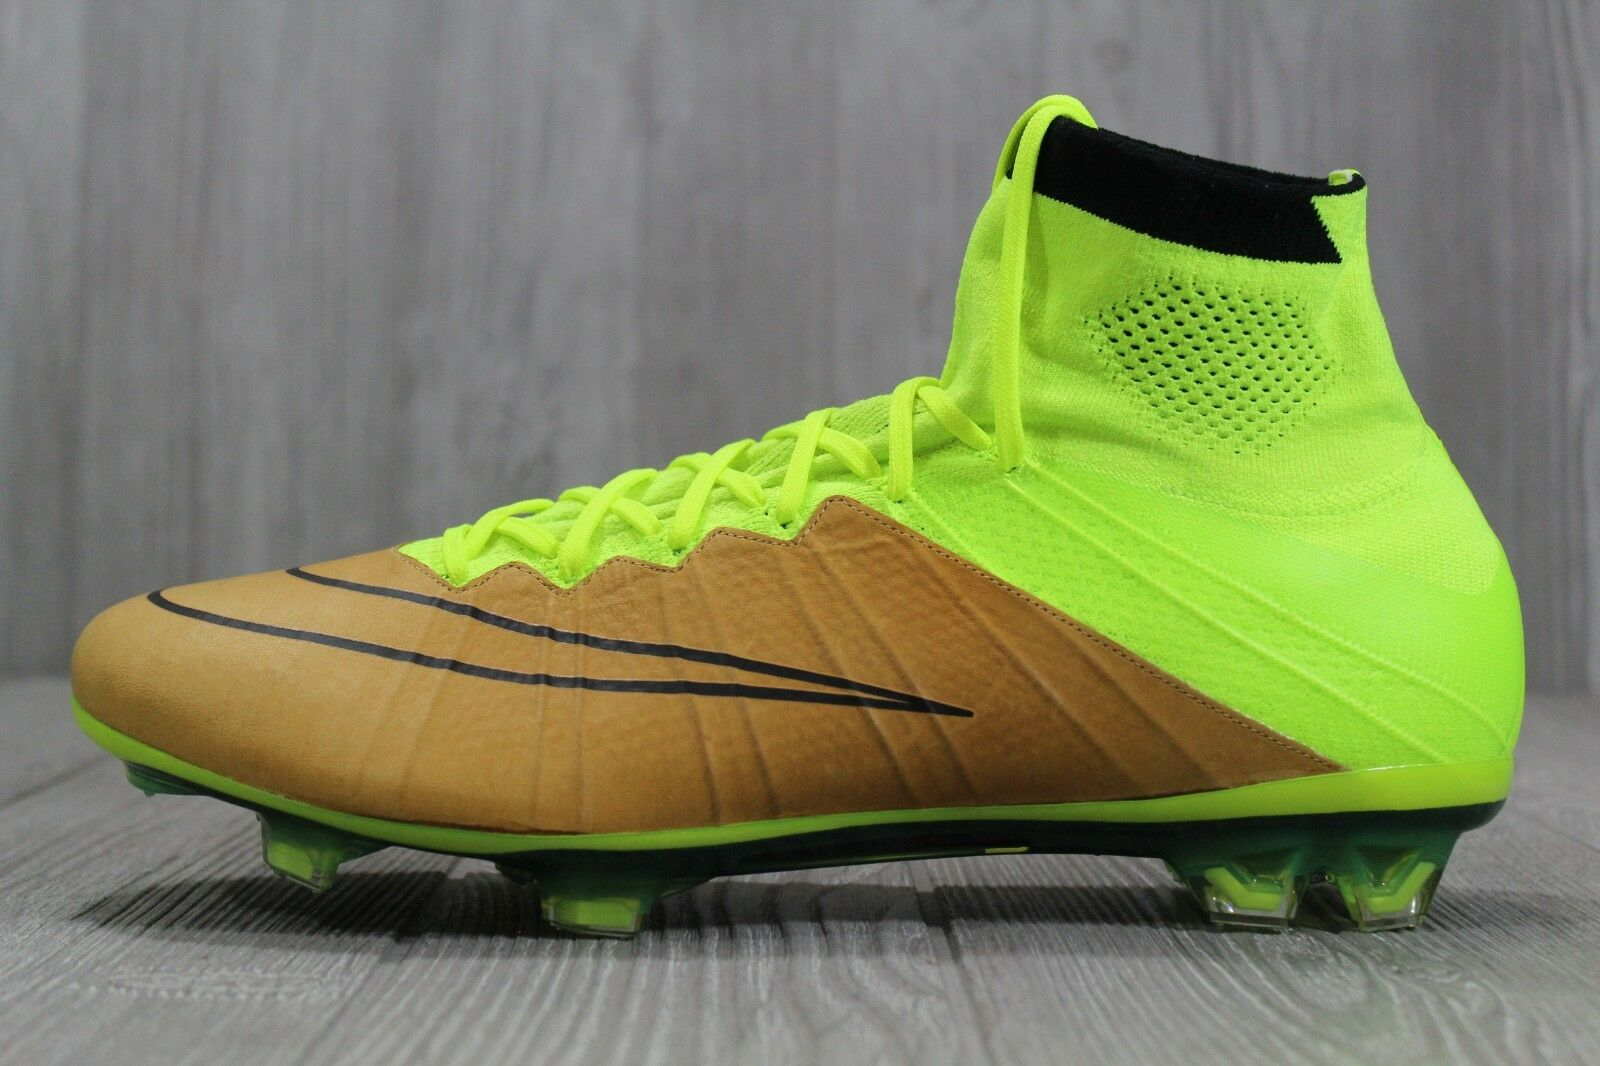 new arrival 0c809 10379 ... AF1   SIZE 10   SF1 SPECIAL FIELD MEN SHOES 864024-003,. 35 New Nike  Mercurial Superfly Leather FG Soccer Cleats Cleats Cleats Volt Men s 11  747219-